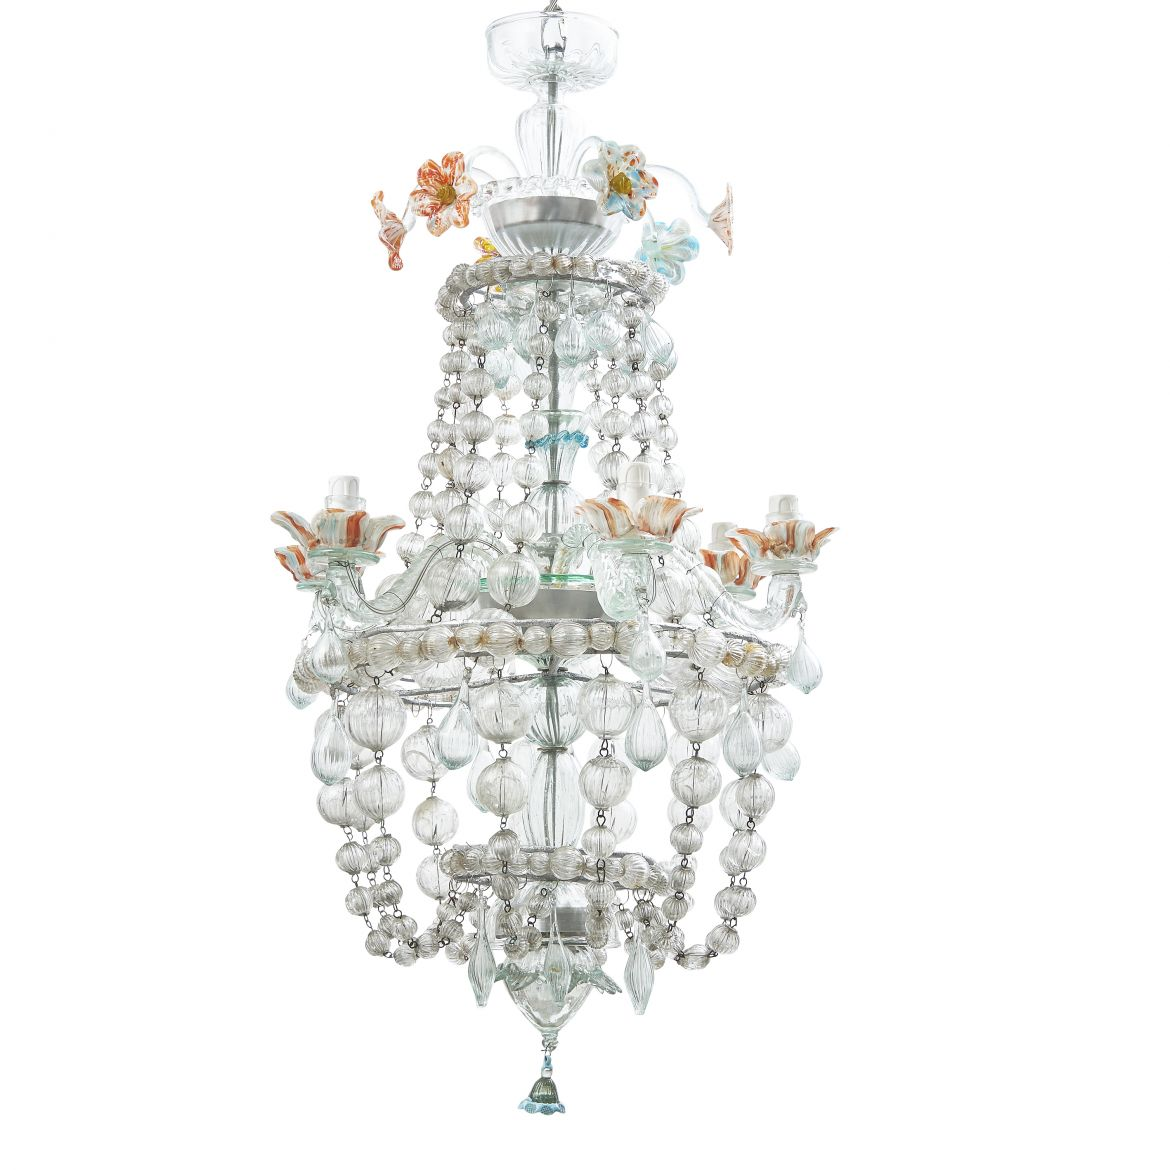 Italian Murano Chandelier With Hand Blown Glass Flowers